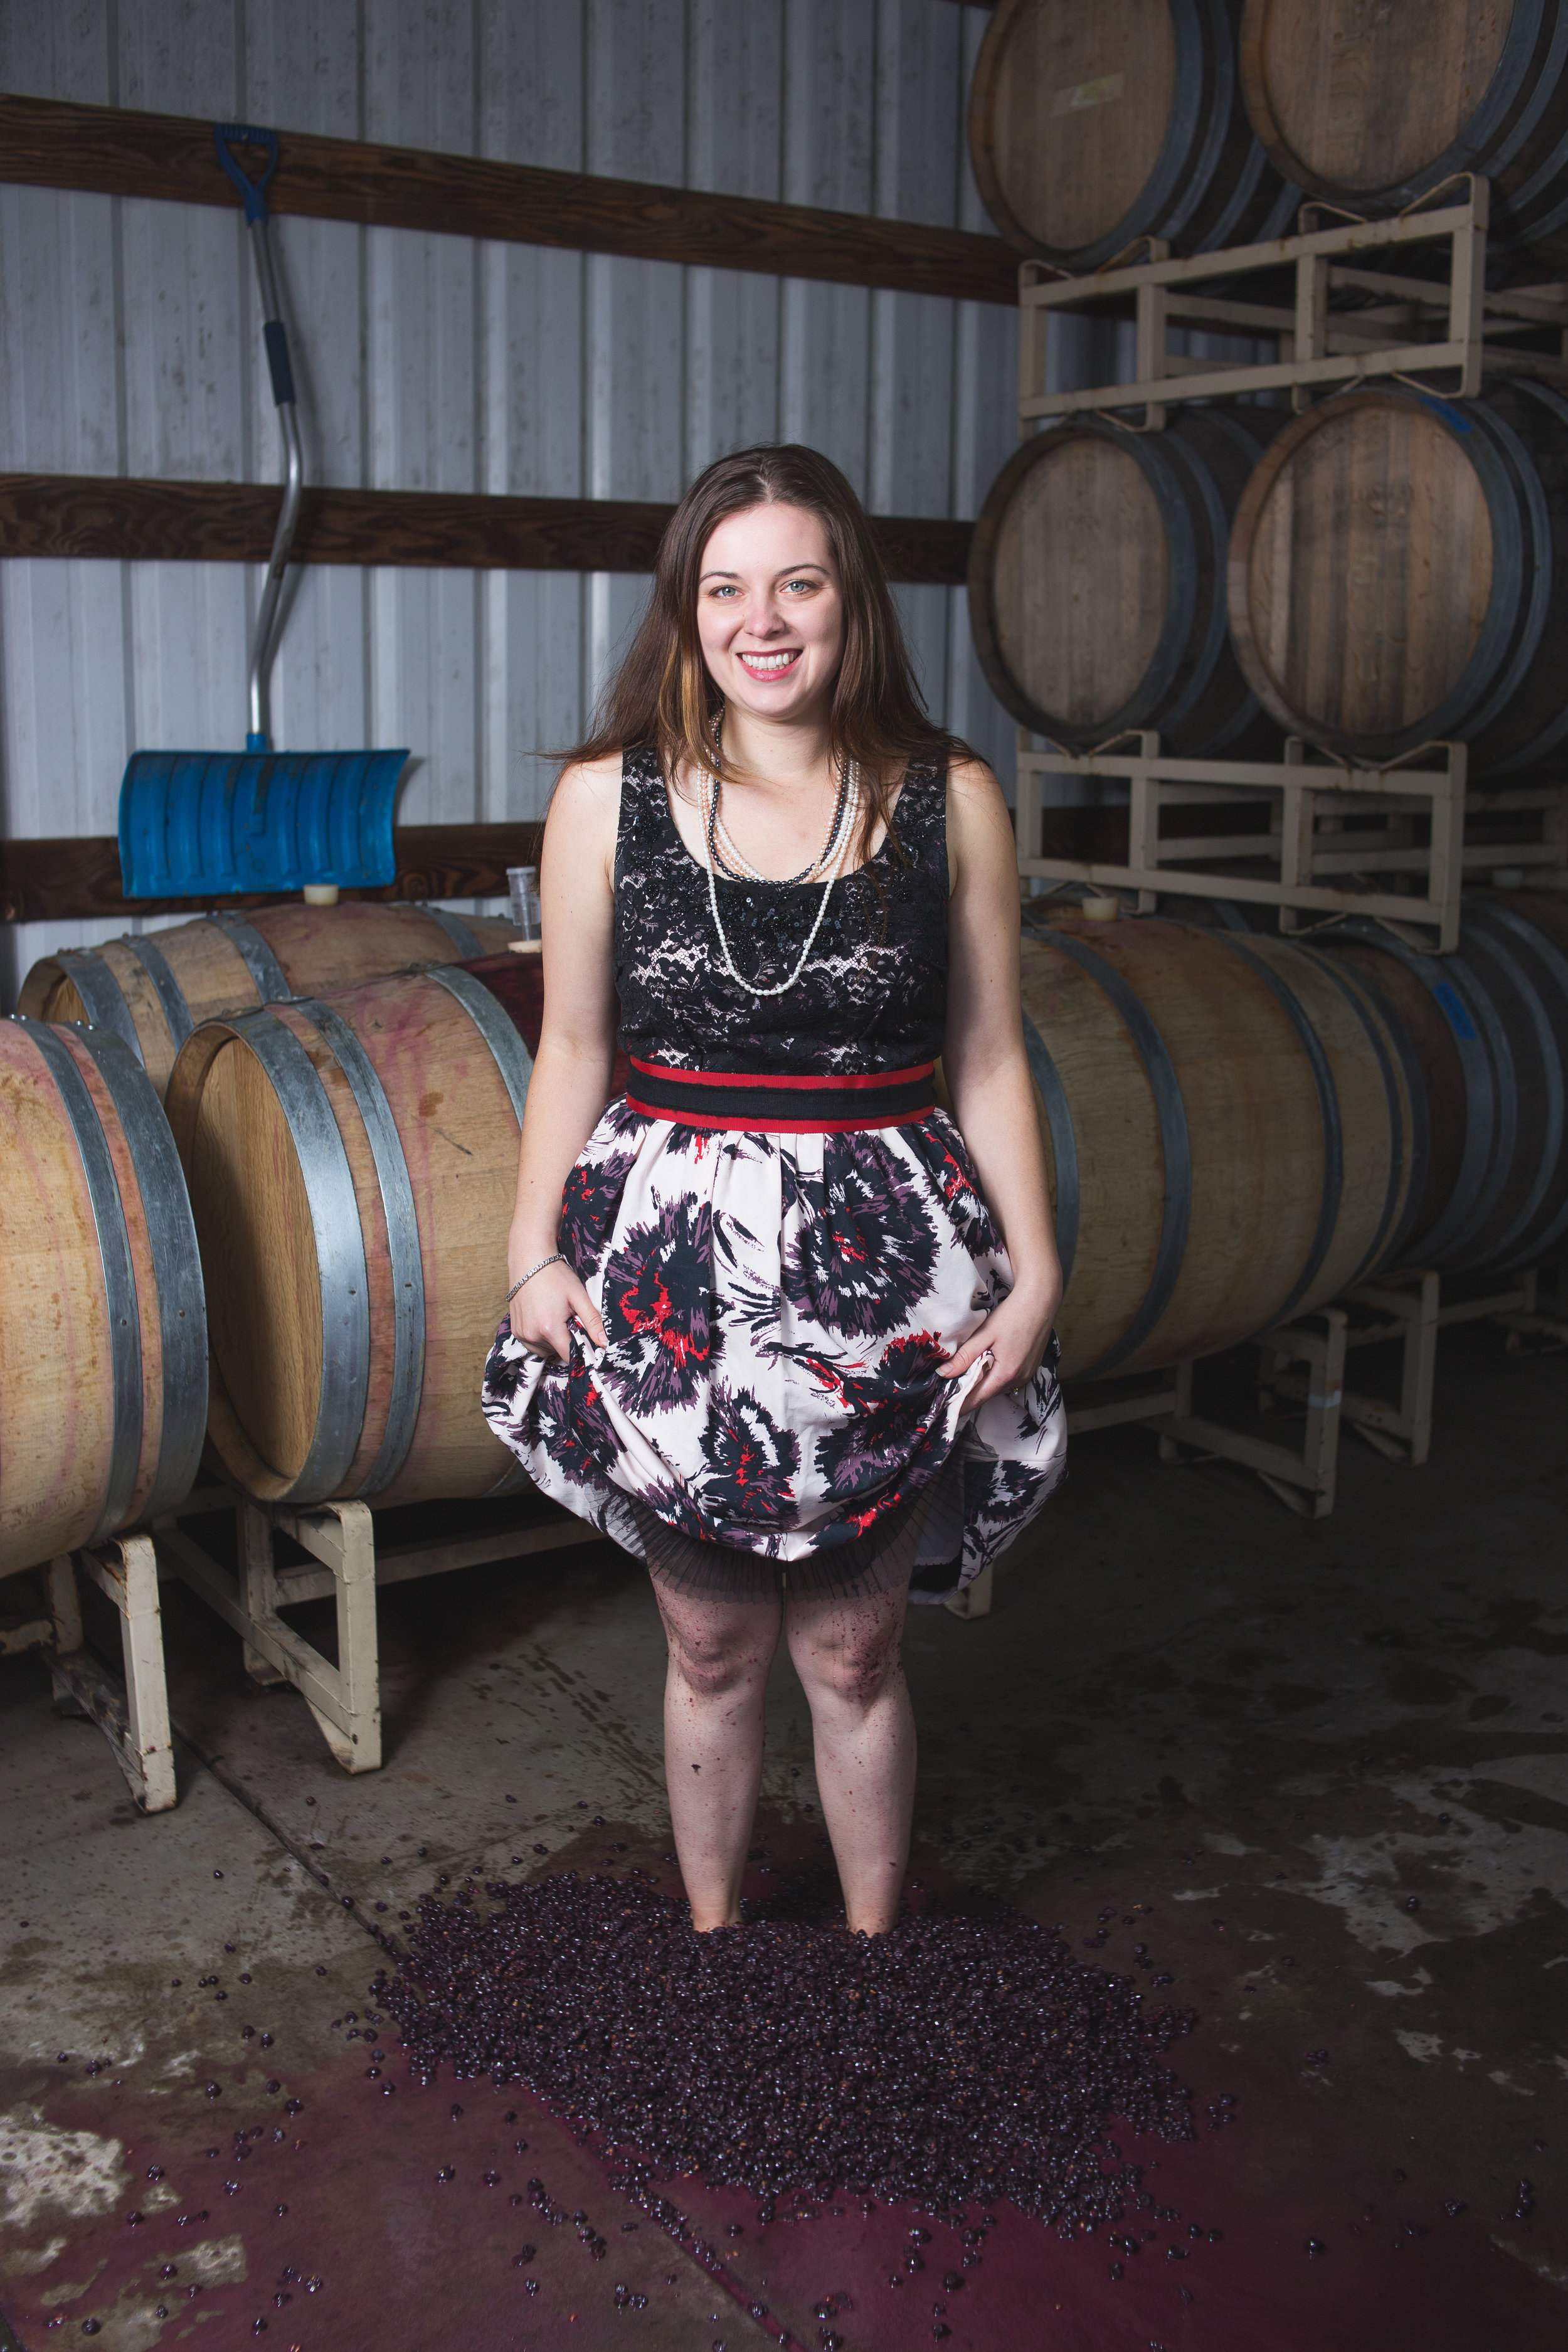 """Justina Harris -   Direct Sales Manager   Justina moved here from Idaho and deeply resents all of the potato and, """"You da ho!"""" jokes. While in Idaho, she spent 4 years doing a little bit of everything in the industry, from managing the tasting room to running labs and working harvest. But her first love was Oregon Pinot Noir and she is thrilled to have finally made her way back to it. See her in our tasting room and you'll get why we hired her. An absolute firecracker, Justina is a great addition to our PVV team."""